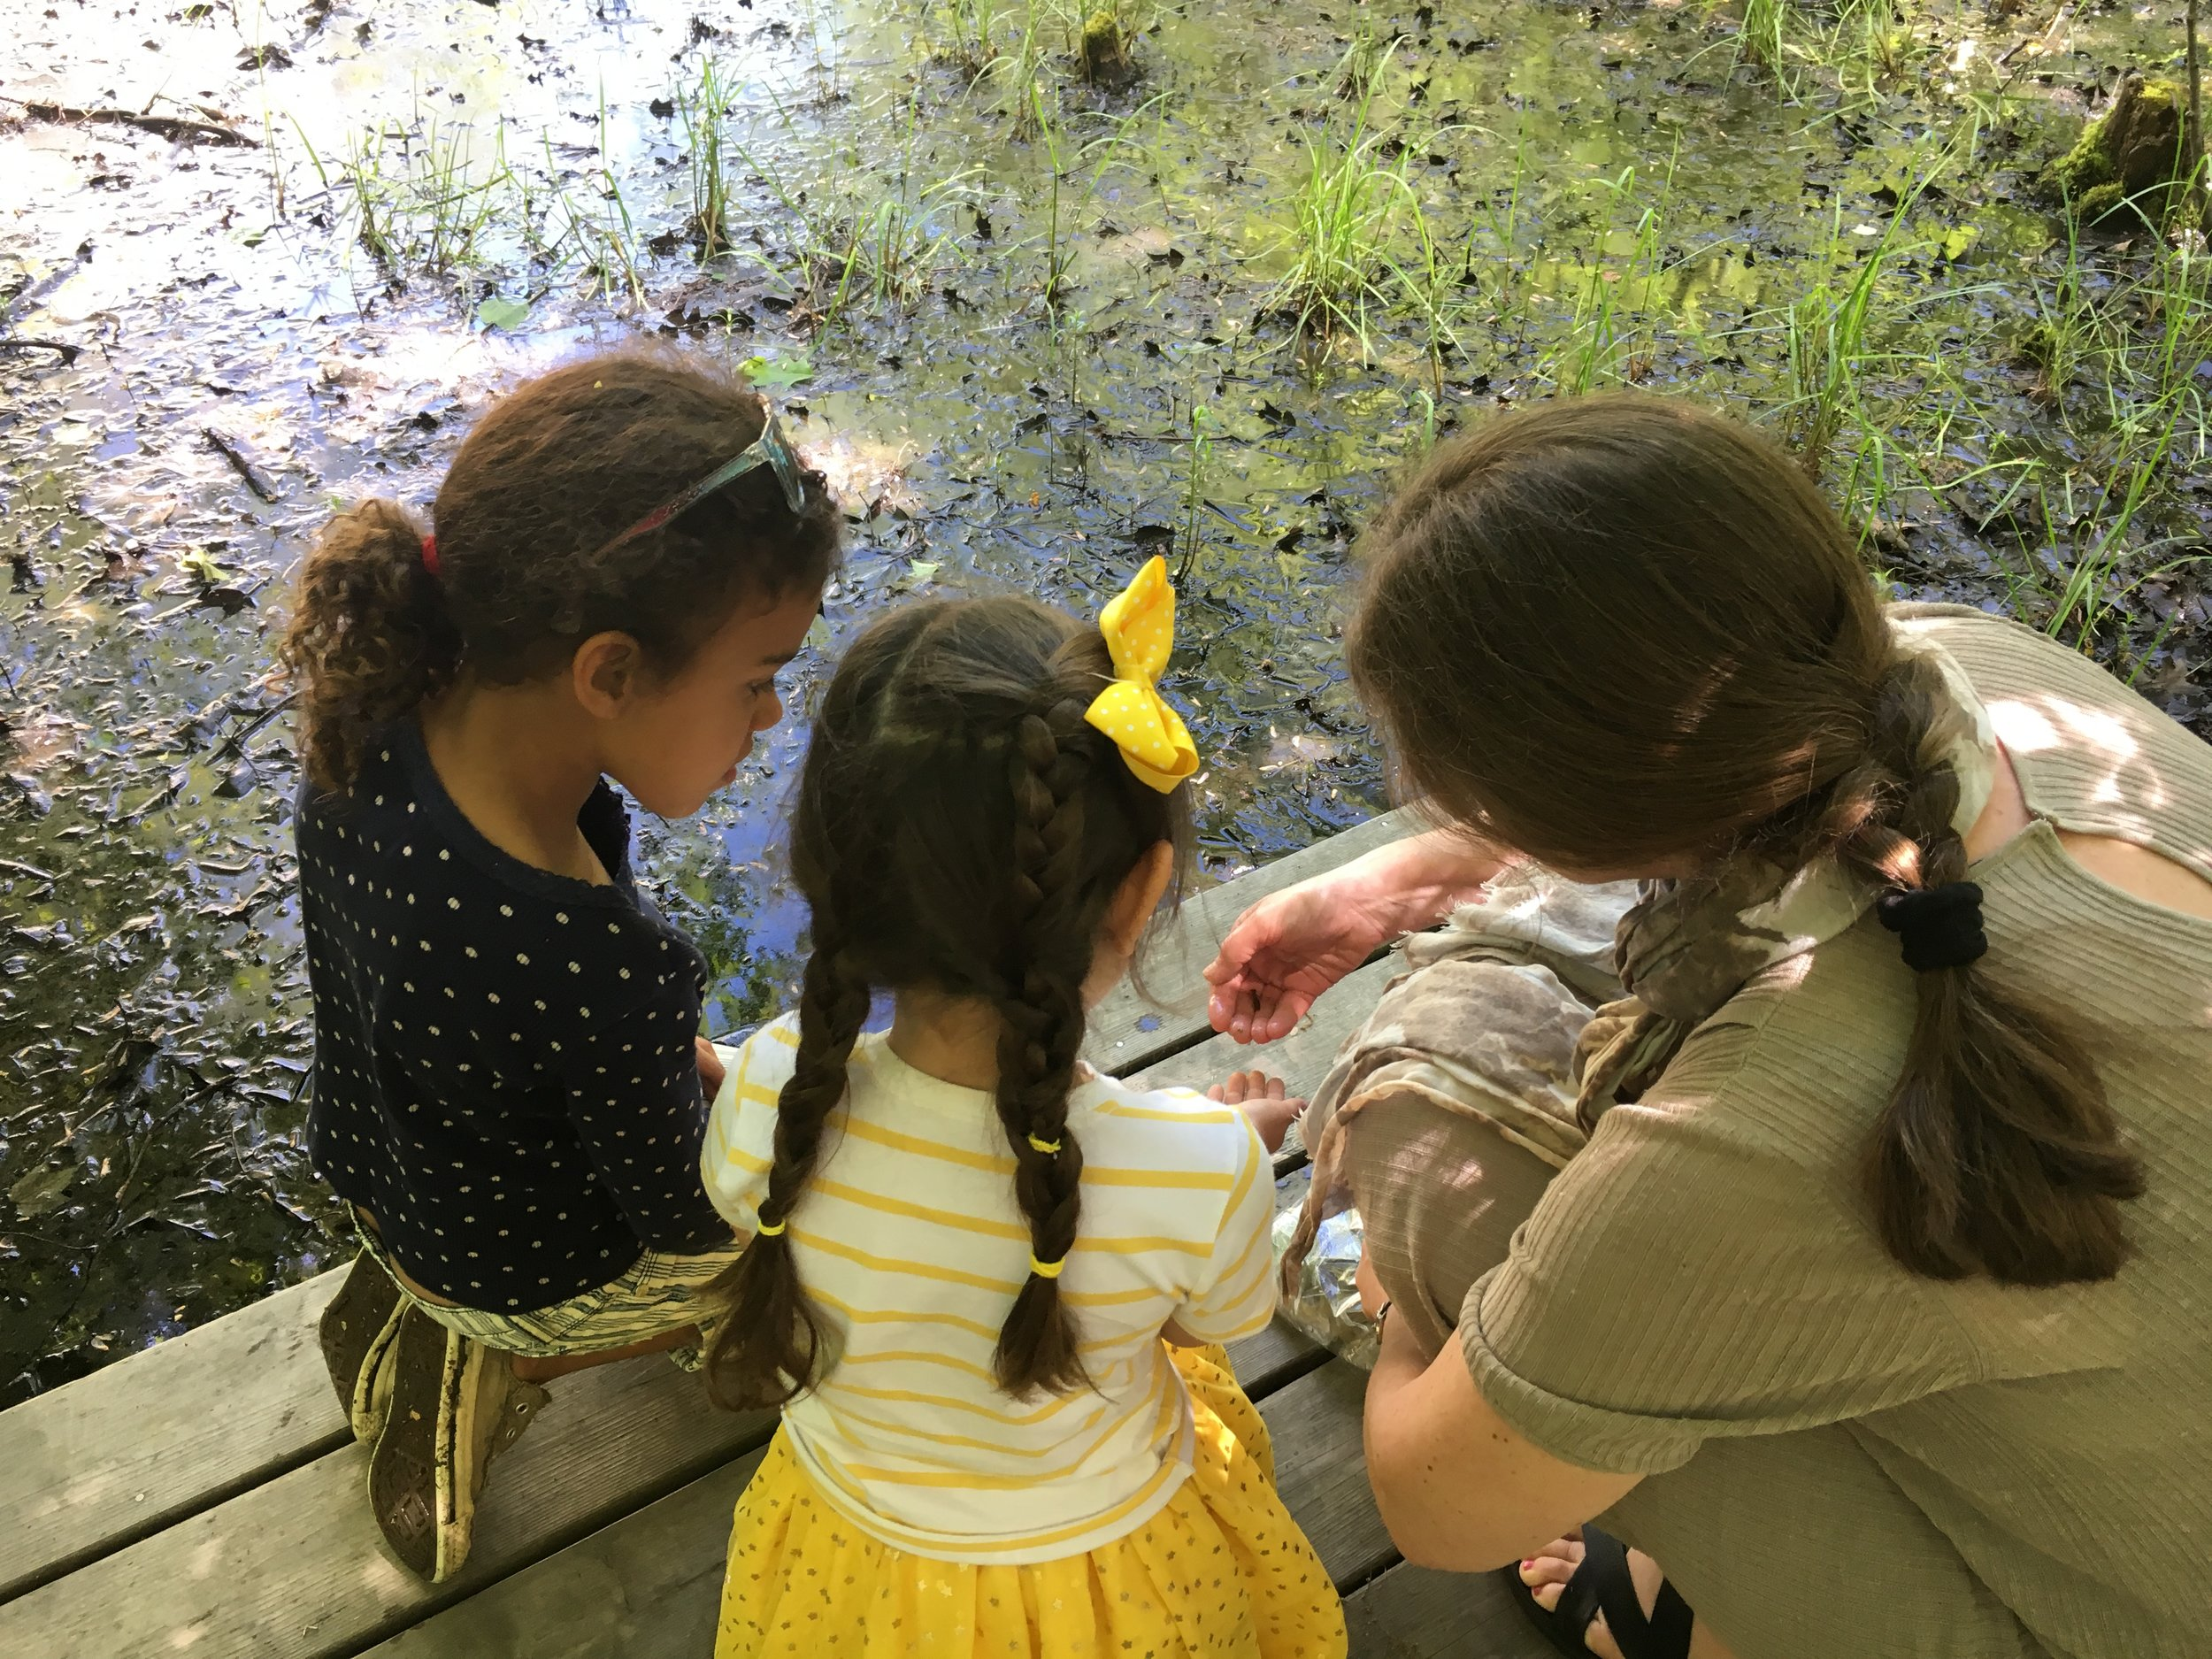 Head of School, Alica, spends time at the vernal pool with some students.